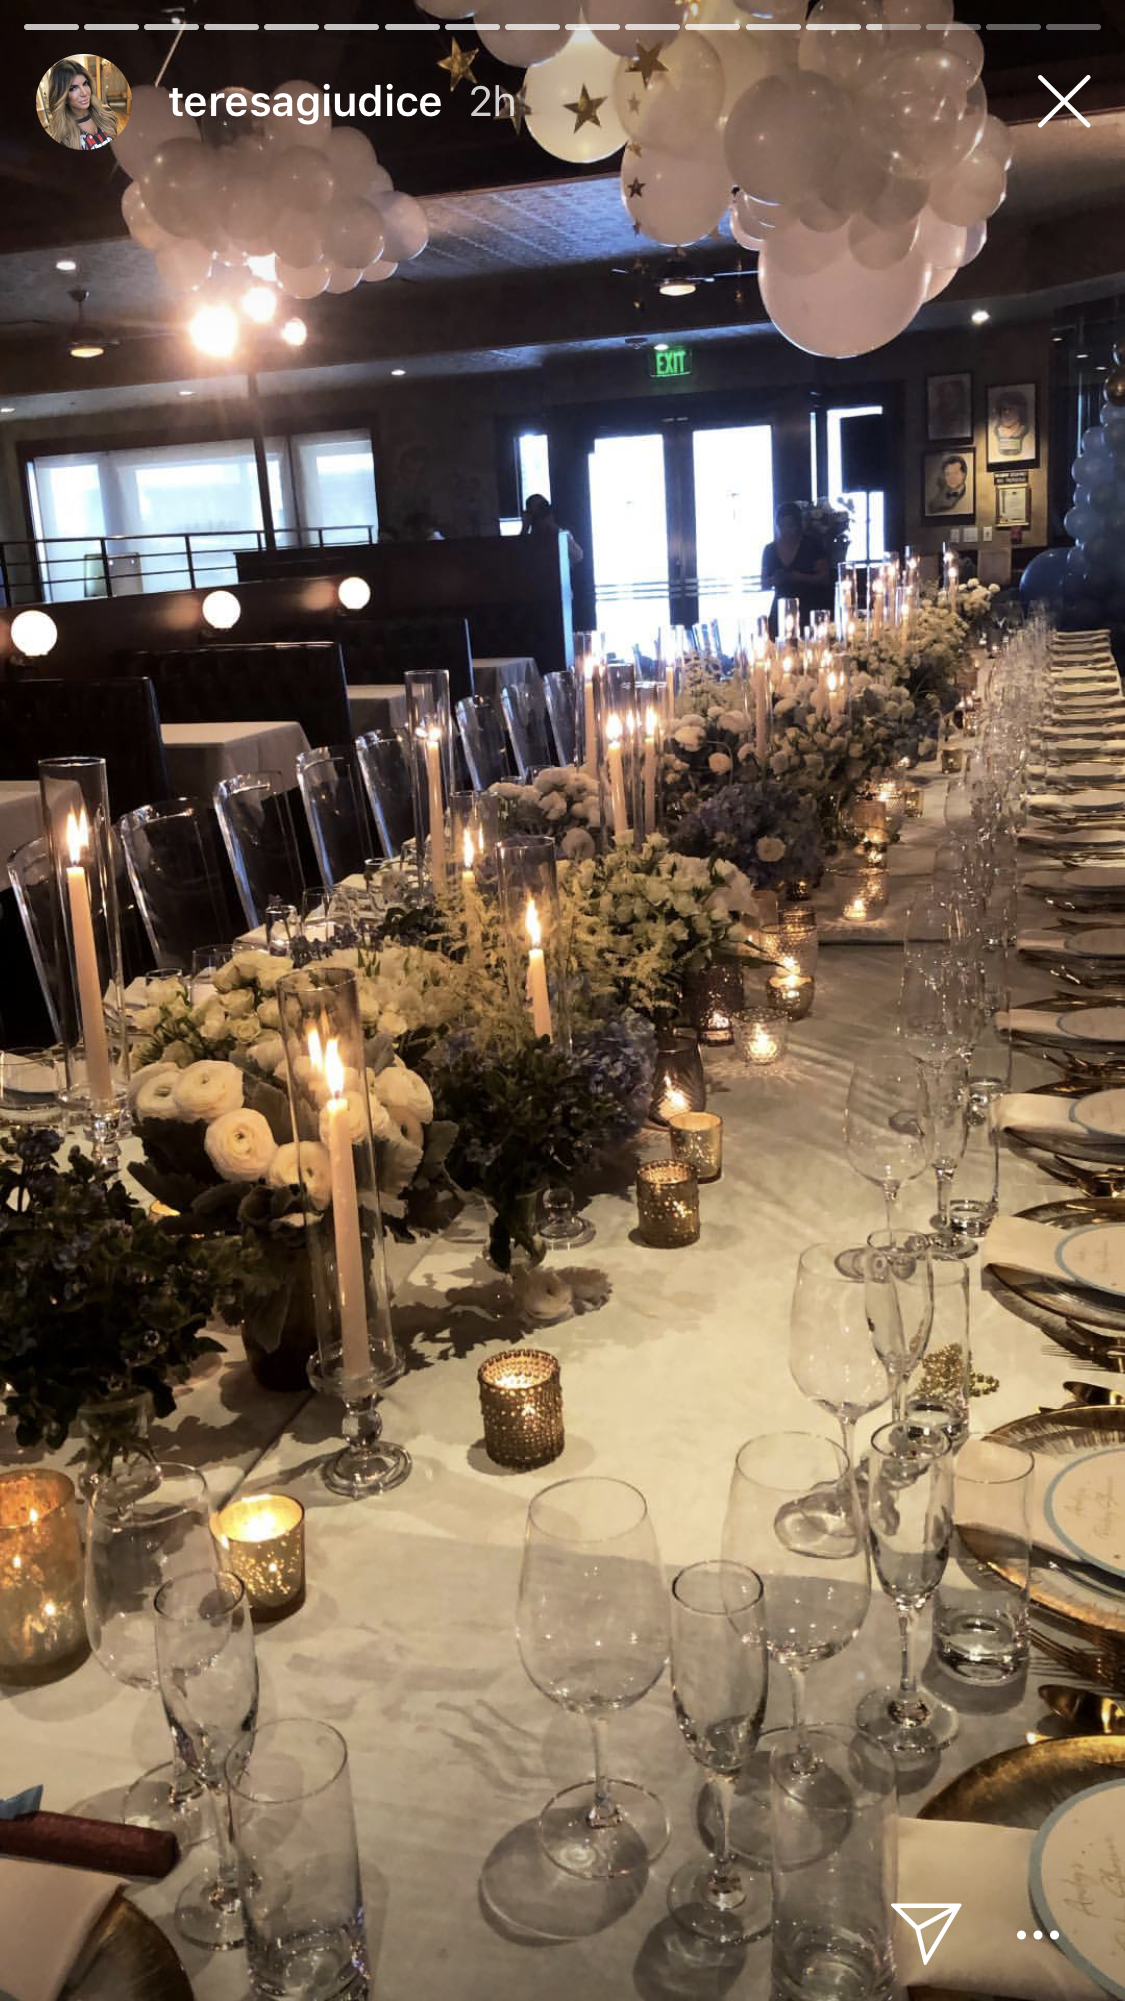 andy cohen, baby shower - The Palm restaurant in L.A. was filled with white balloons while the very long table was set with gold-edged plates and several beautiful floral centerpieces.